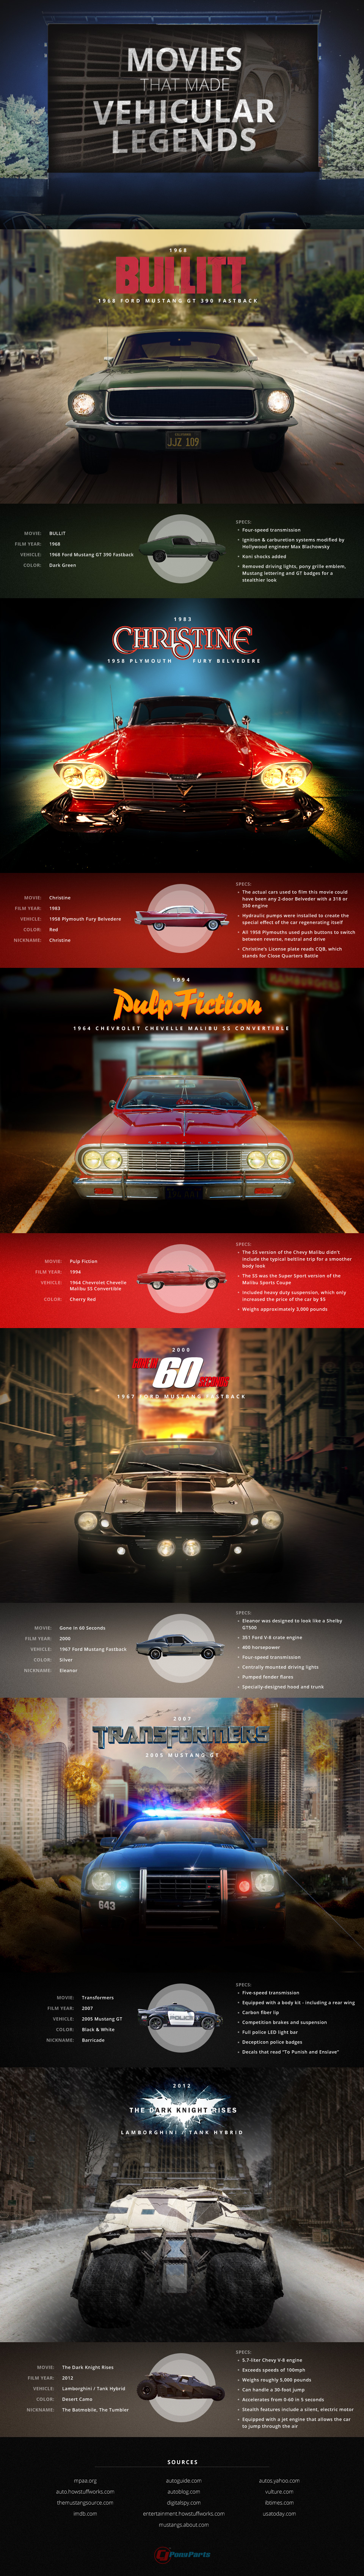 Movies That Made Vehicular Legends